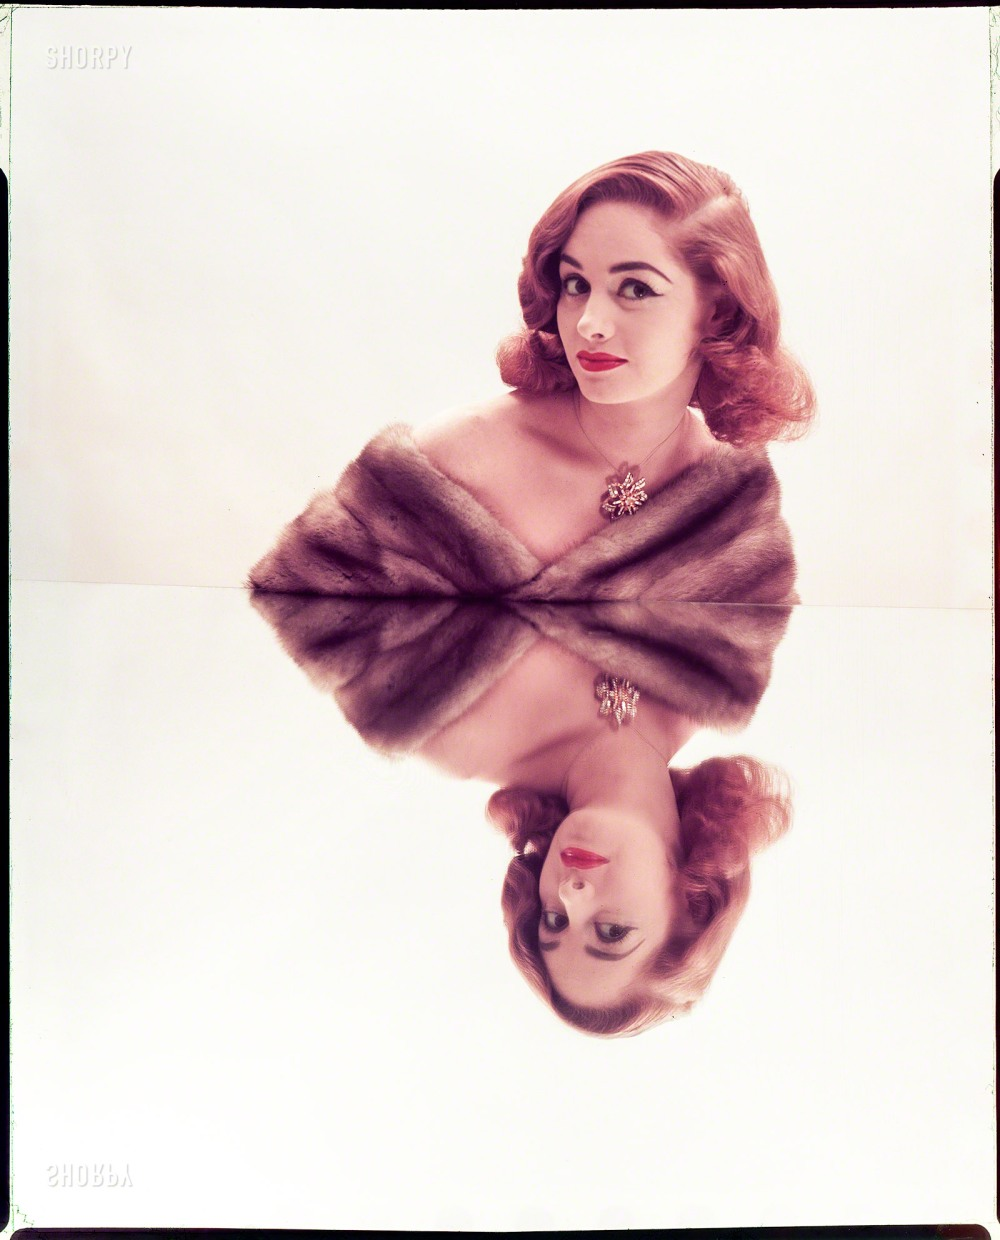 """July 1952. """"Photographs show models posed leaning shoulders against mirrors, resulting in reflected images. Includes women wearing furs and jewels; various hairstyles."""" Color transparency by Louis Faurer for the Look magazine assignment """"Reflected Beauty: Hair Now Gets Double Exposure."""" From Shorpy Historical Photos; see link below."""